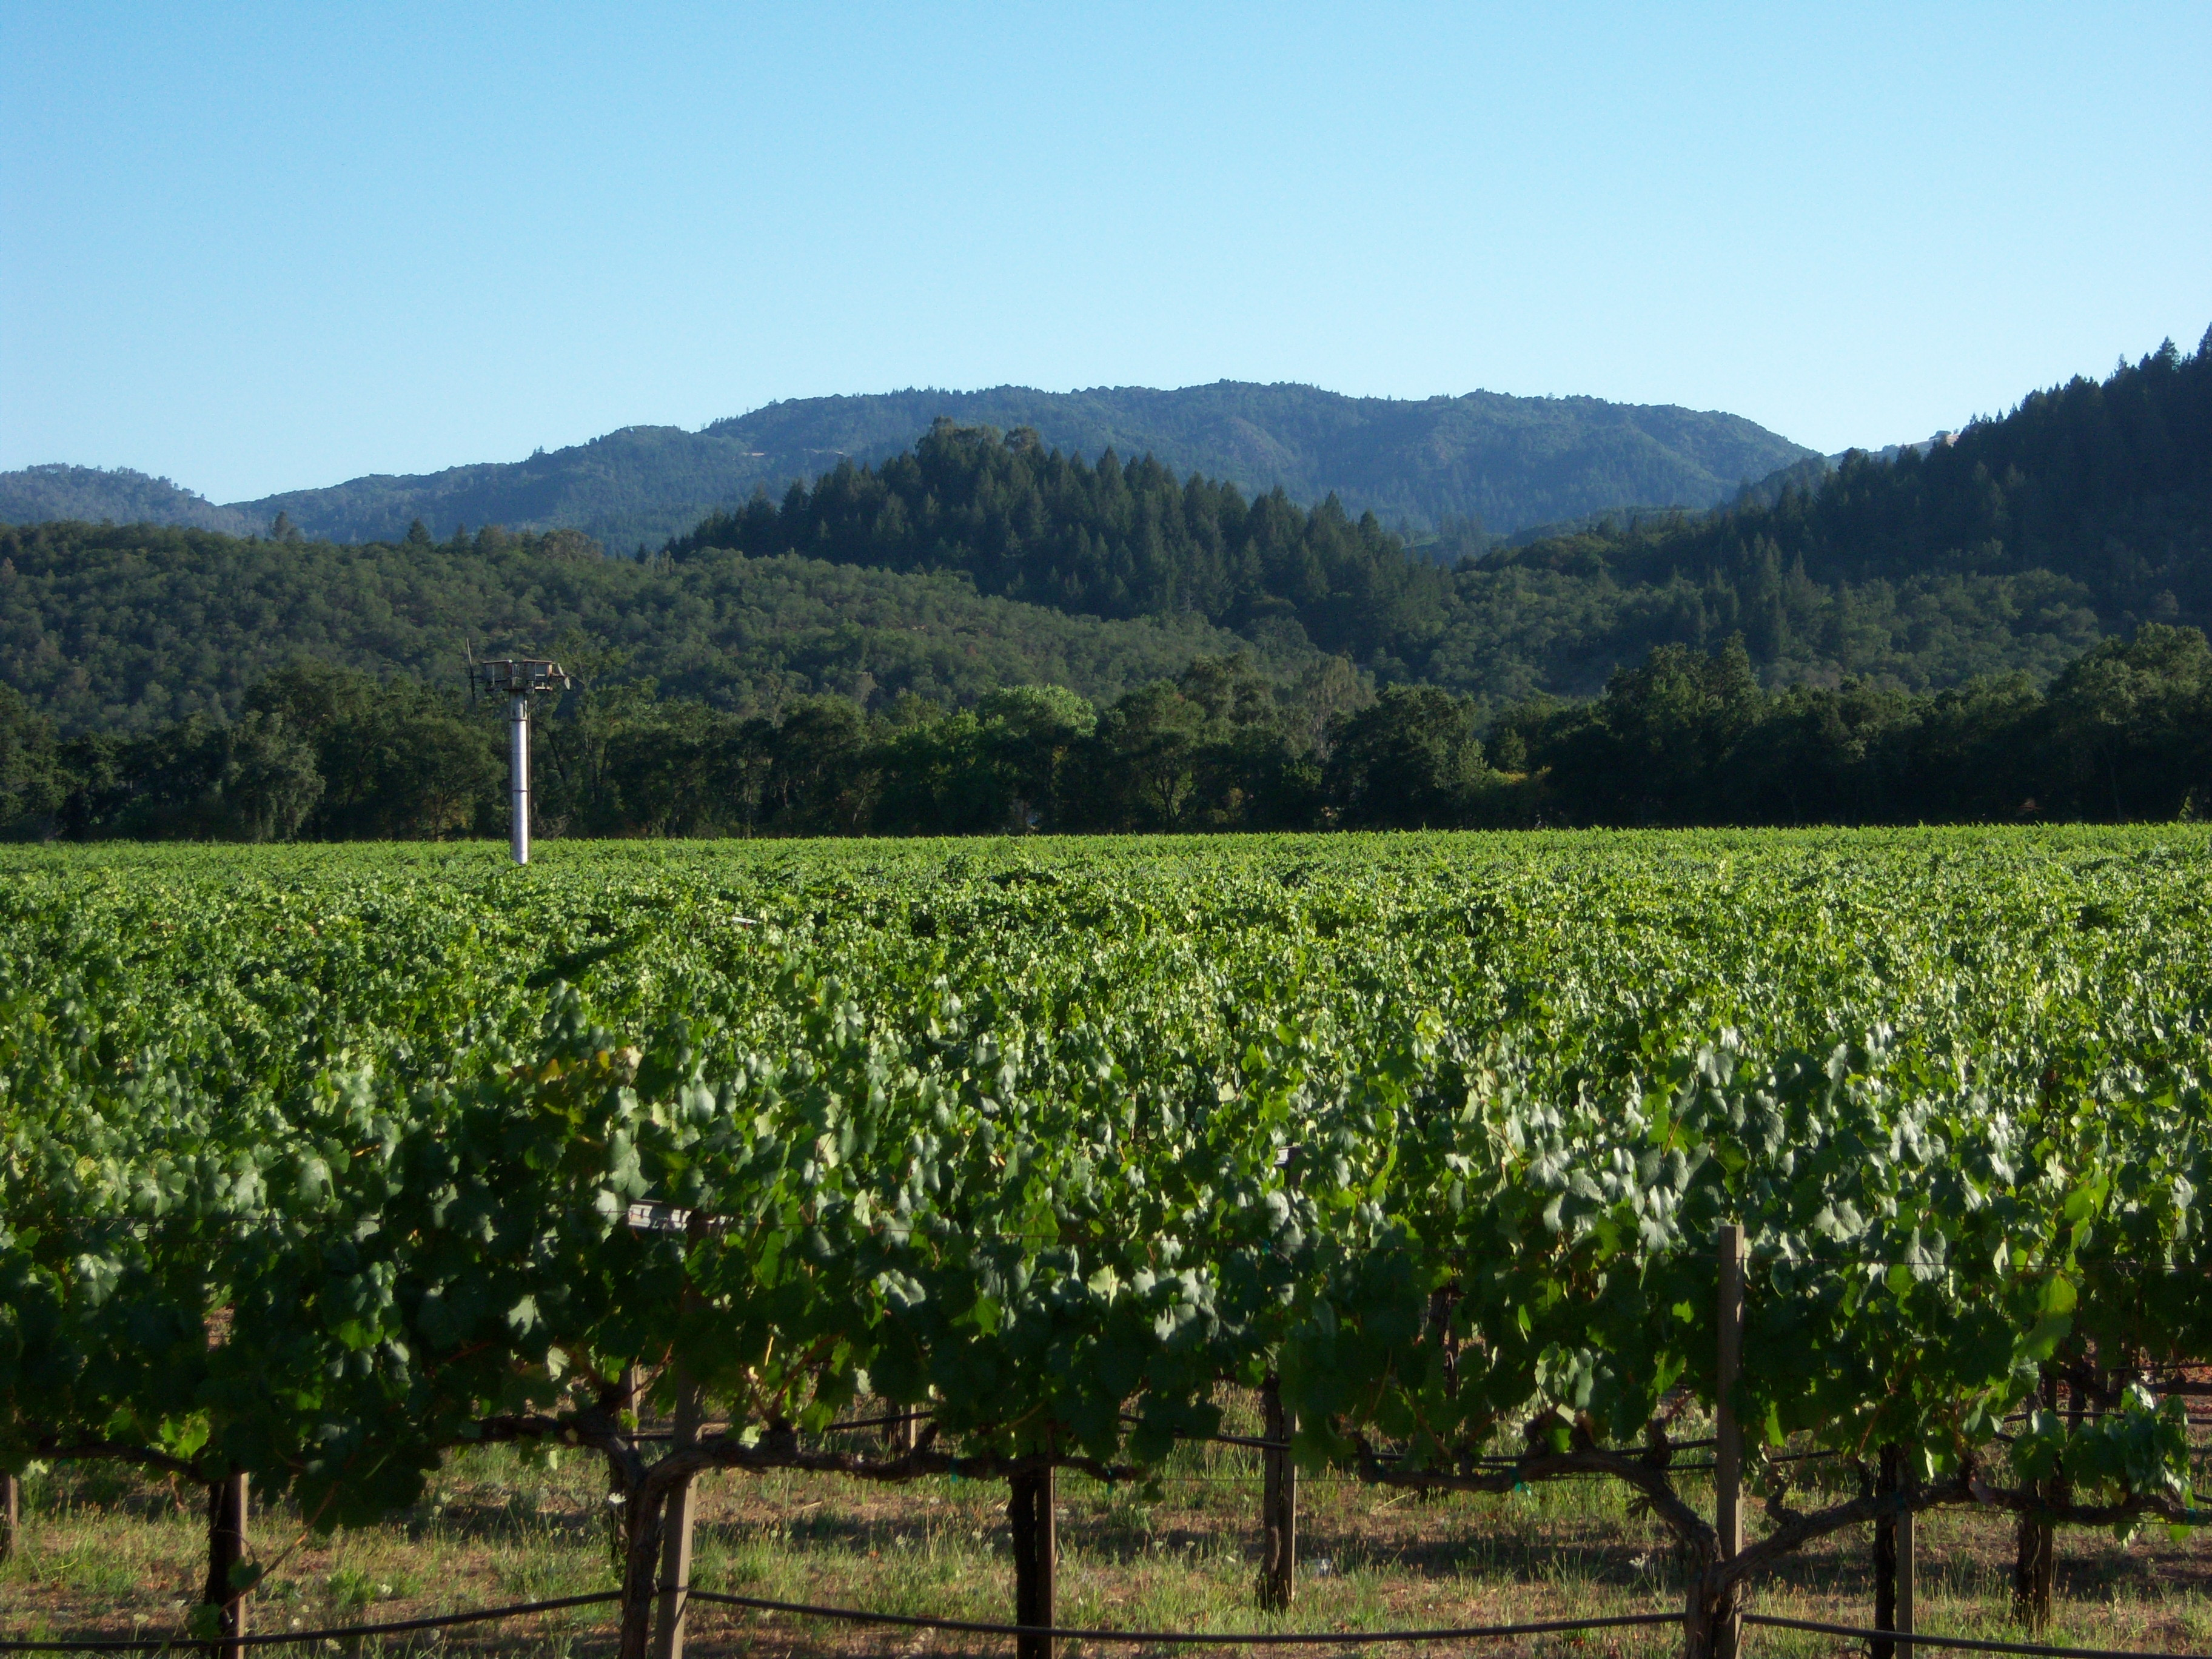 A nice backdrop for a wine tasting event.